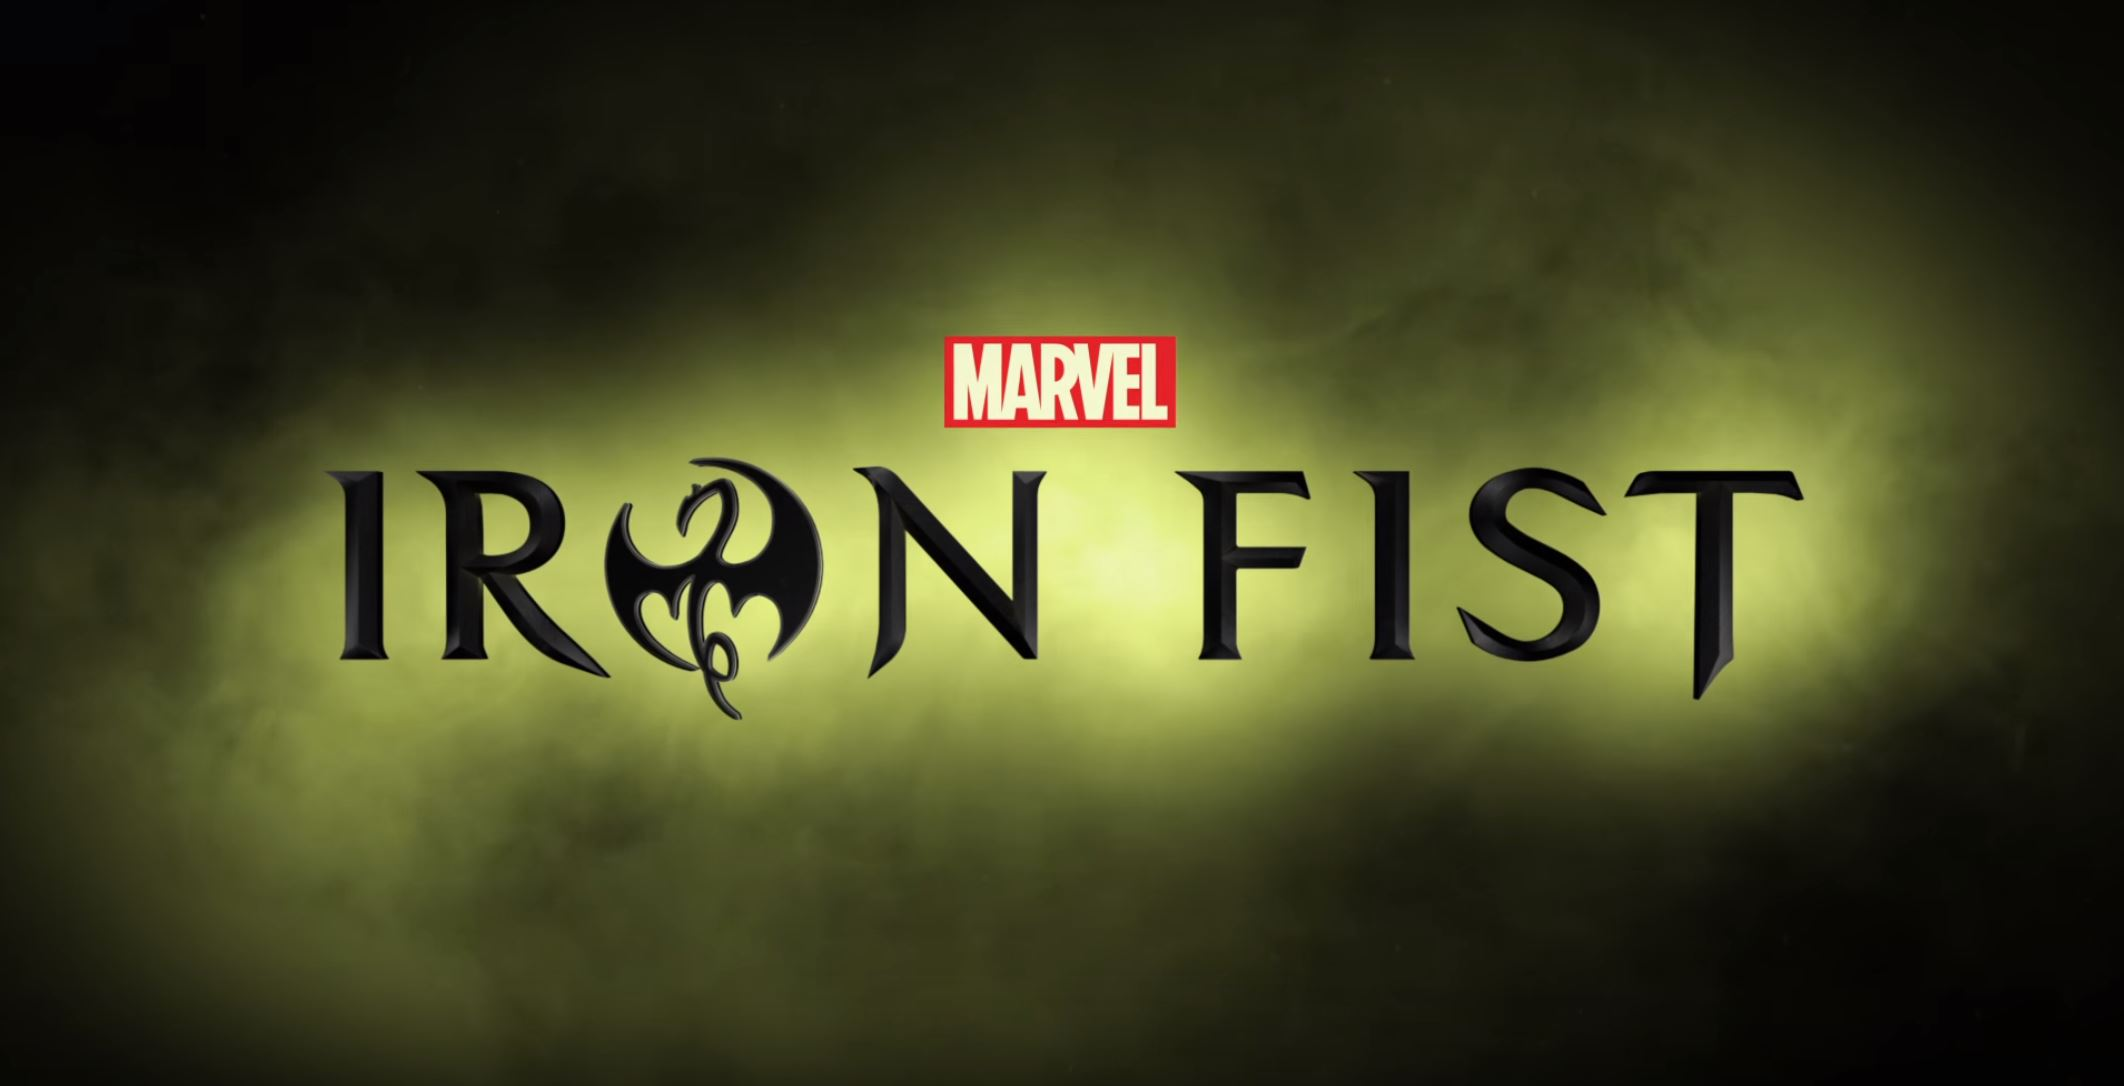 New Teaser From Marvel's Iron Fist!